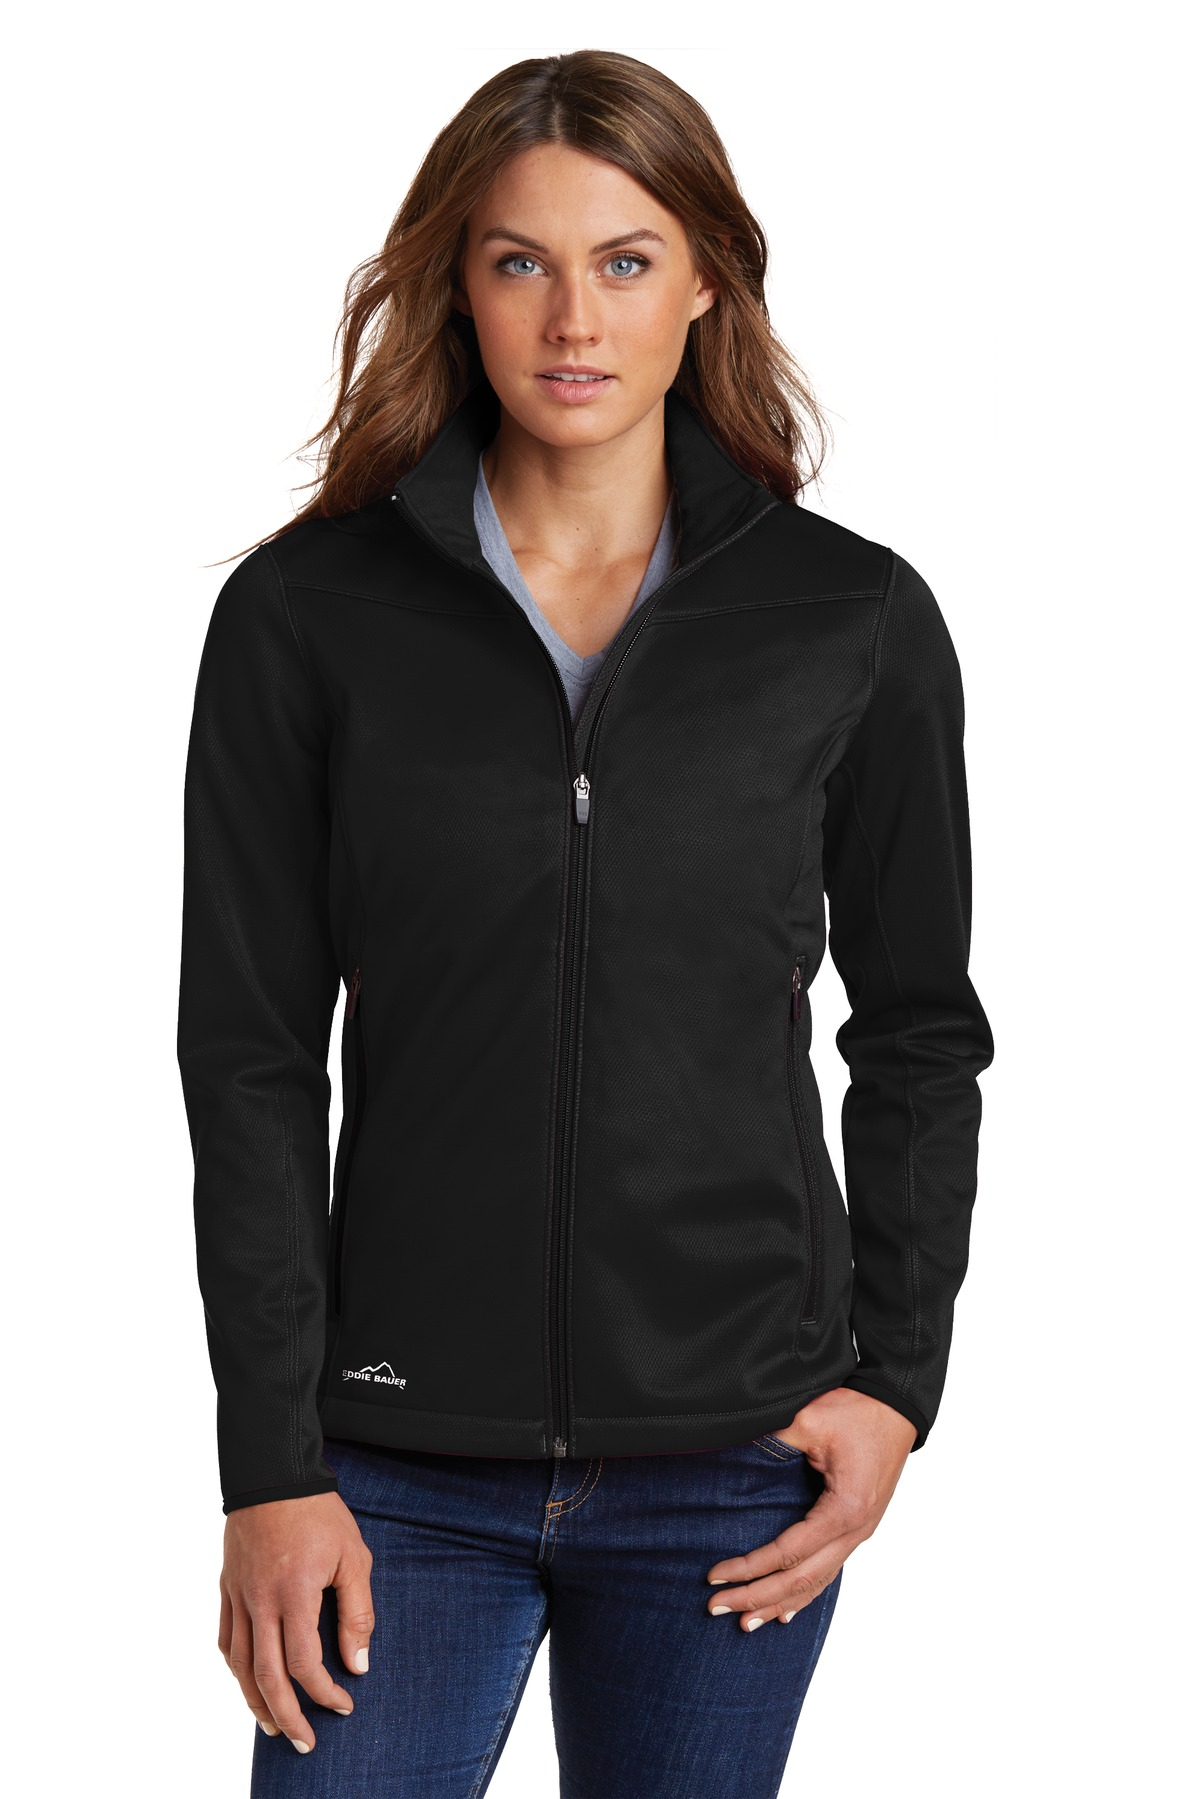 Eddie Bauer  EB539 - Ladies Weather-Resist Soft Shell Jacket